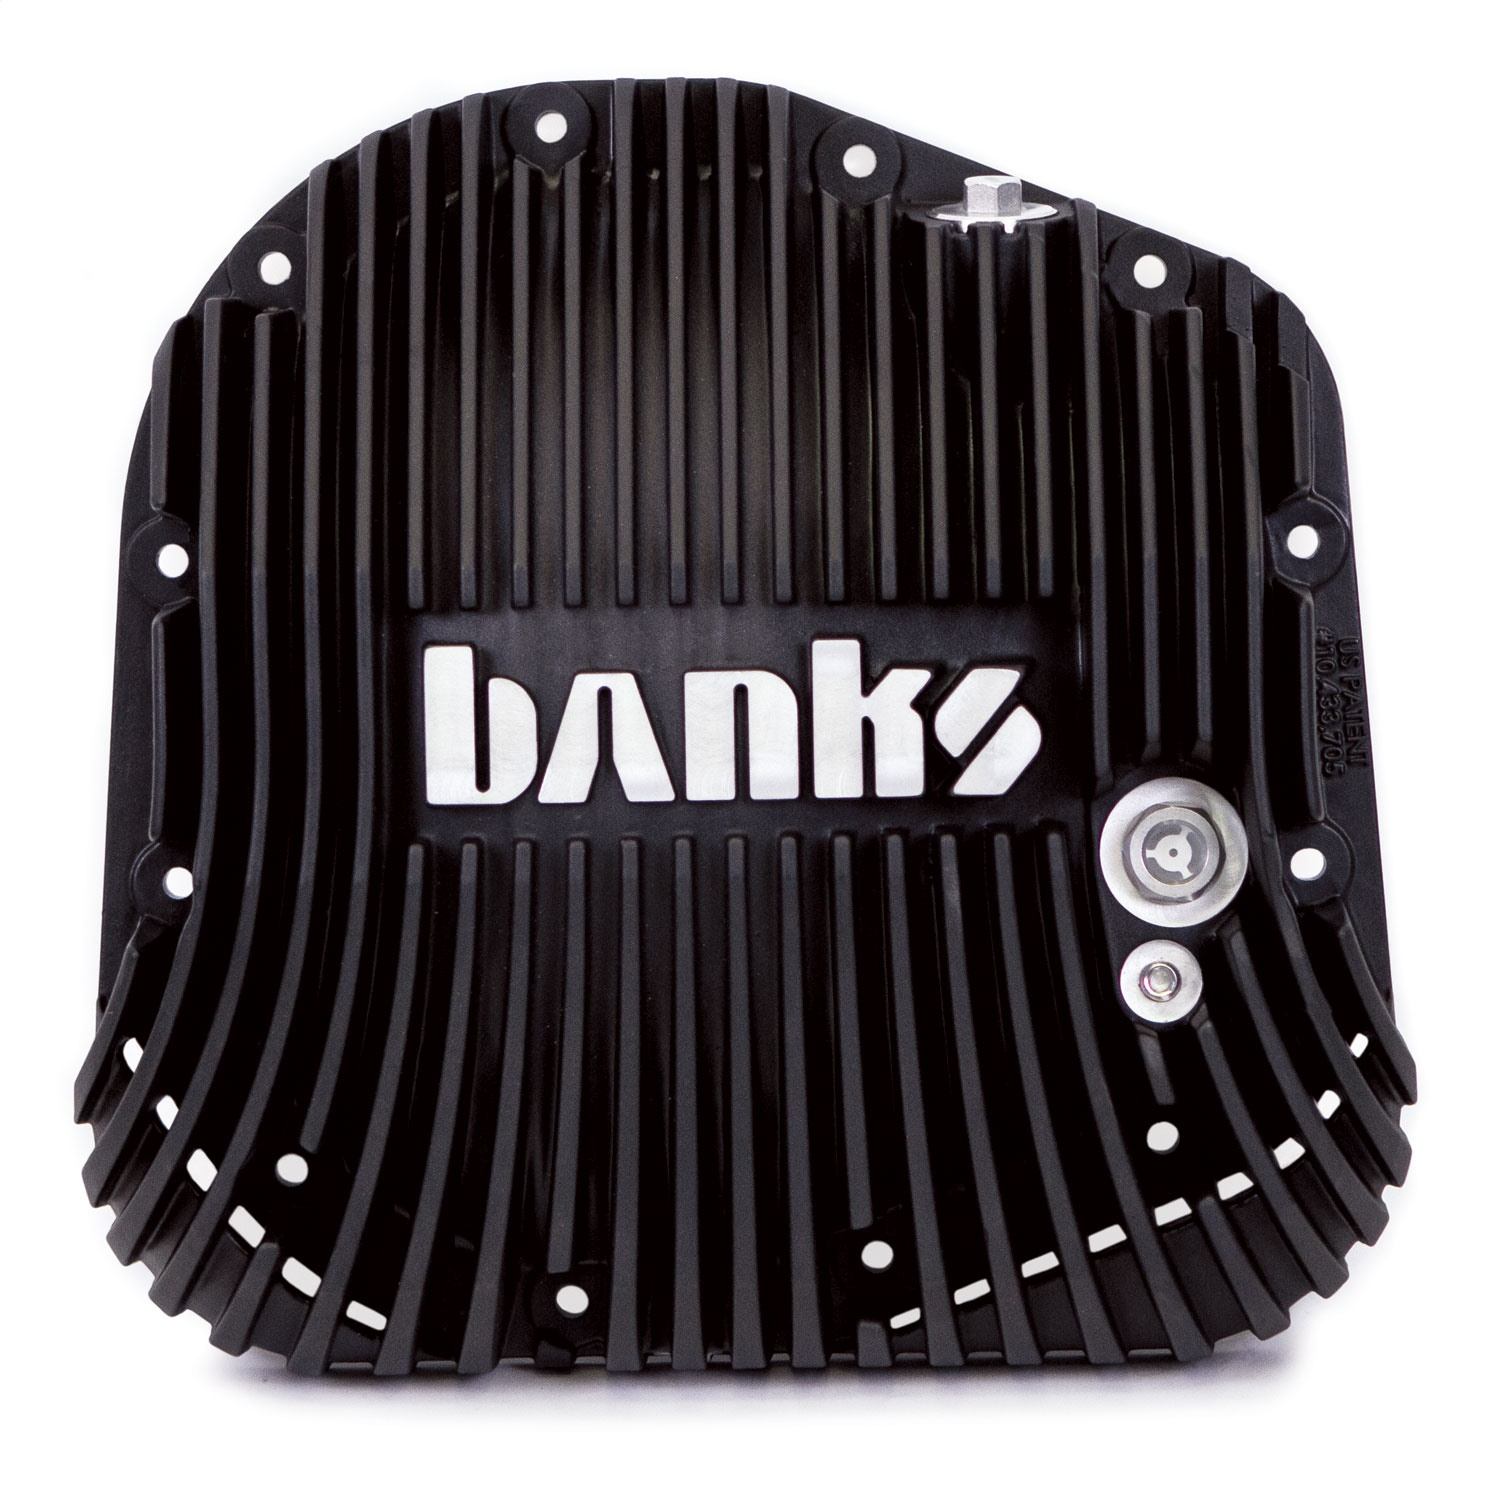 Banks Power 19258 Ram-Air Differential Cover Kit